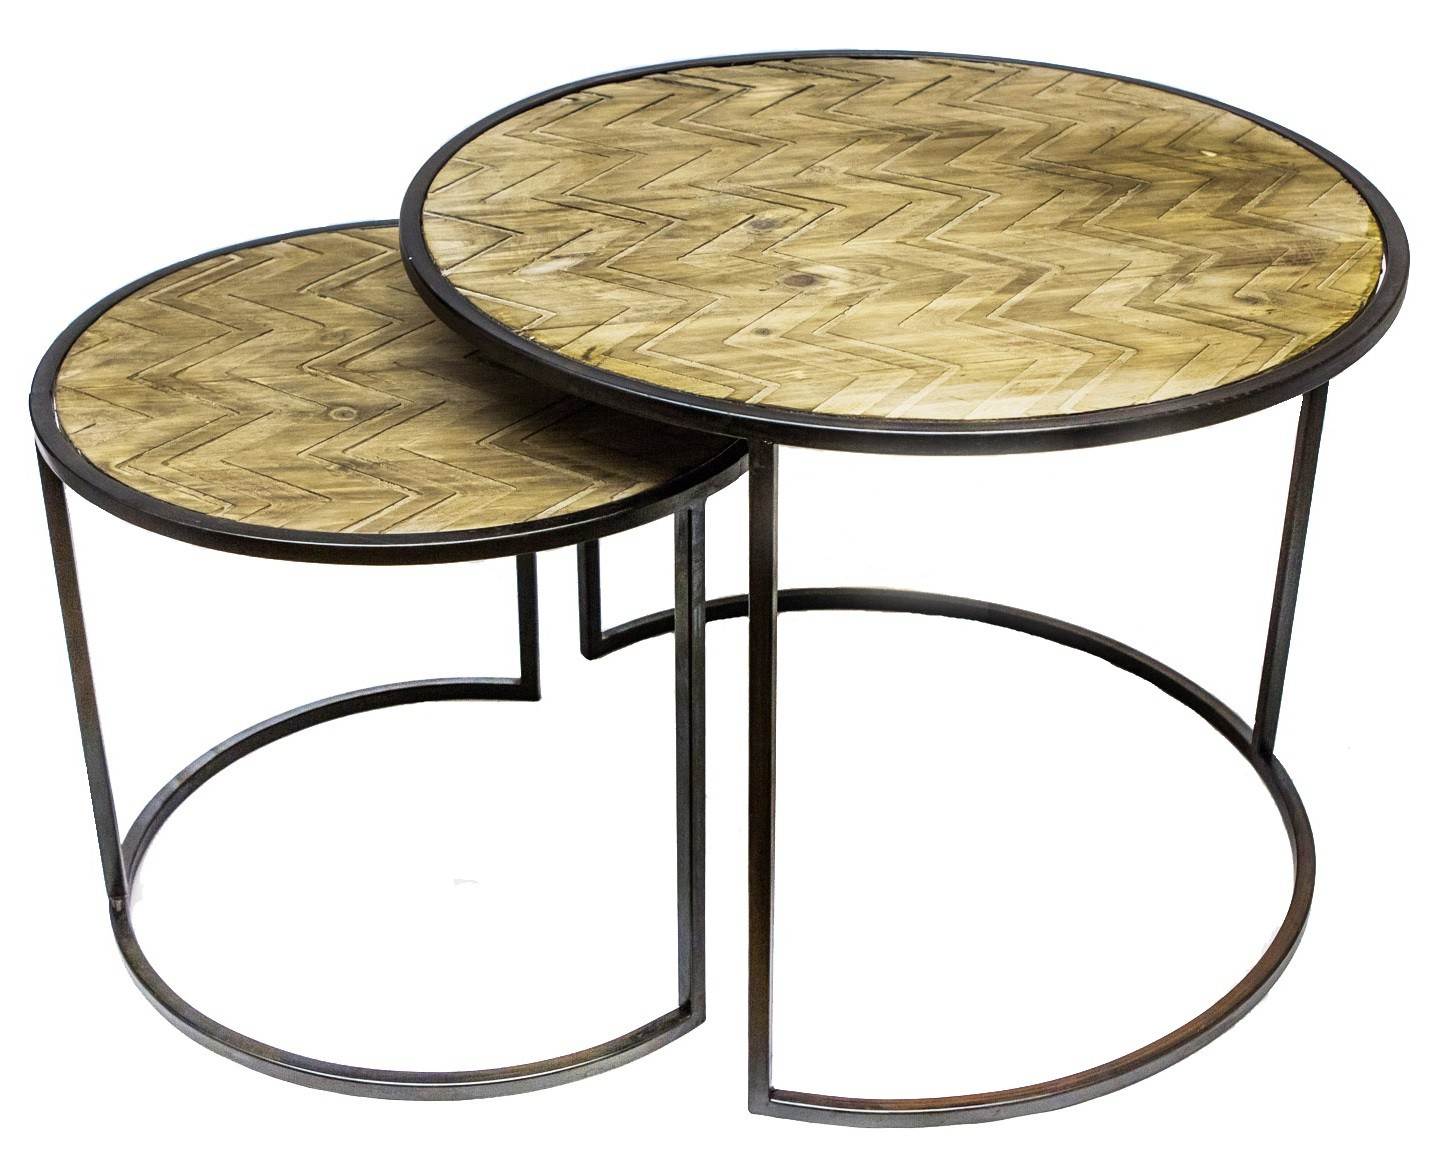 Table basse gigogne ronde noire mobilier design for Table basse gigogne ronde bois